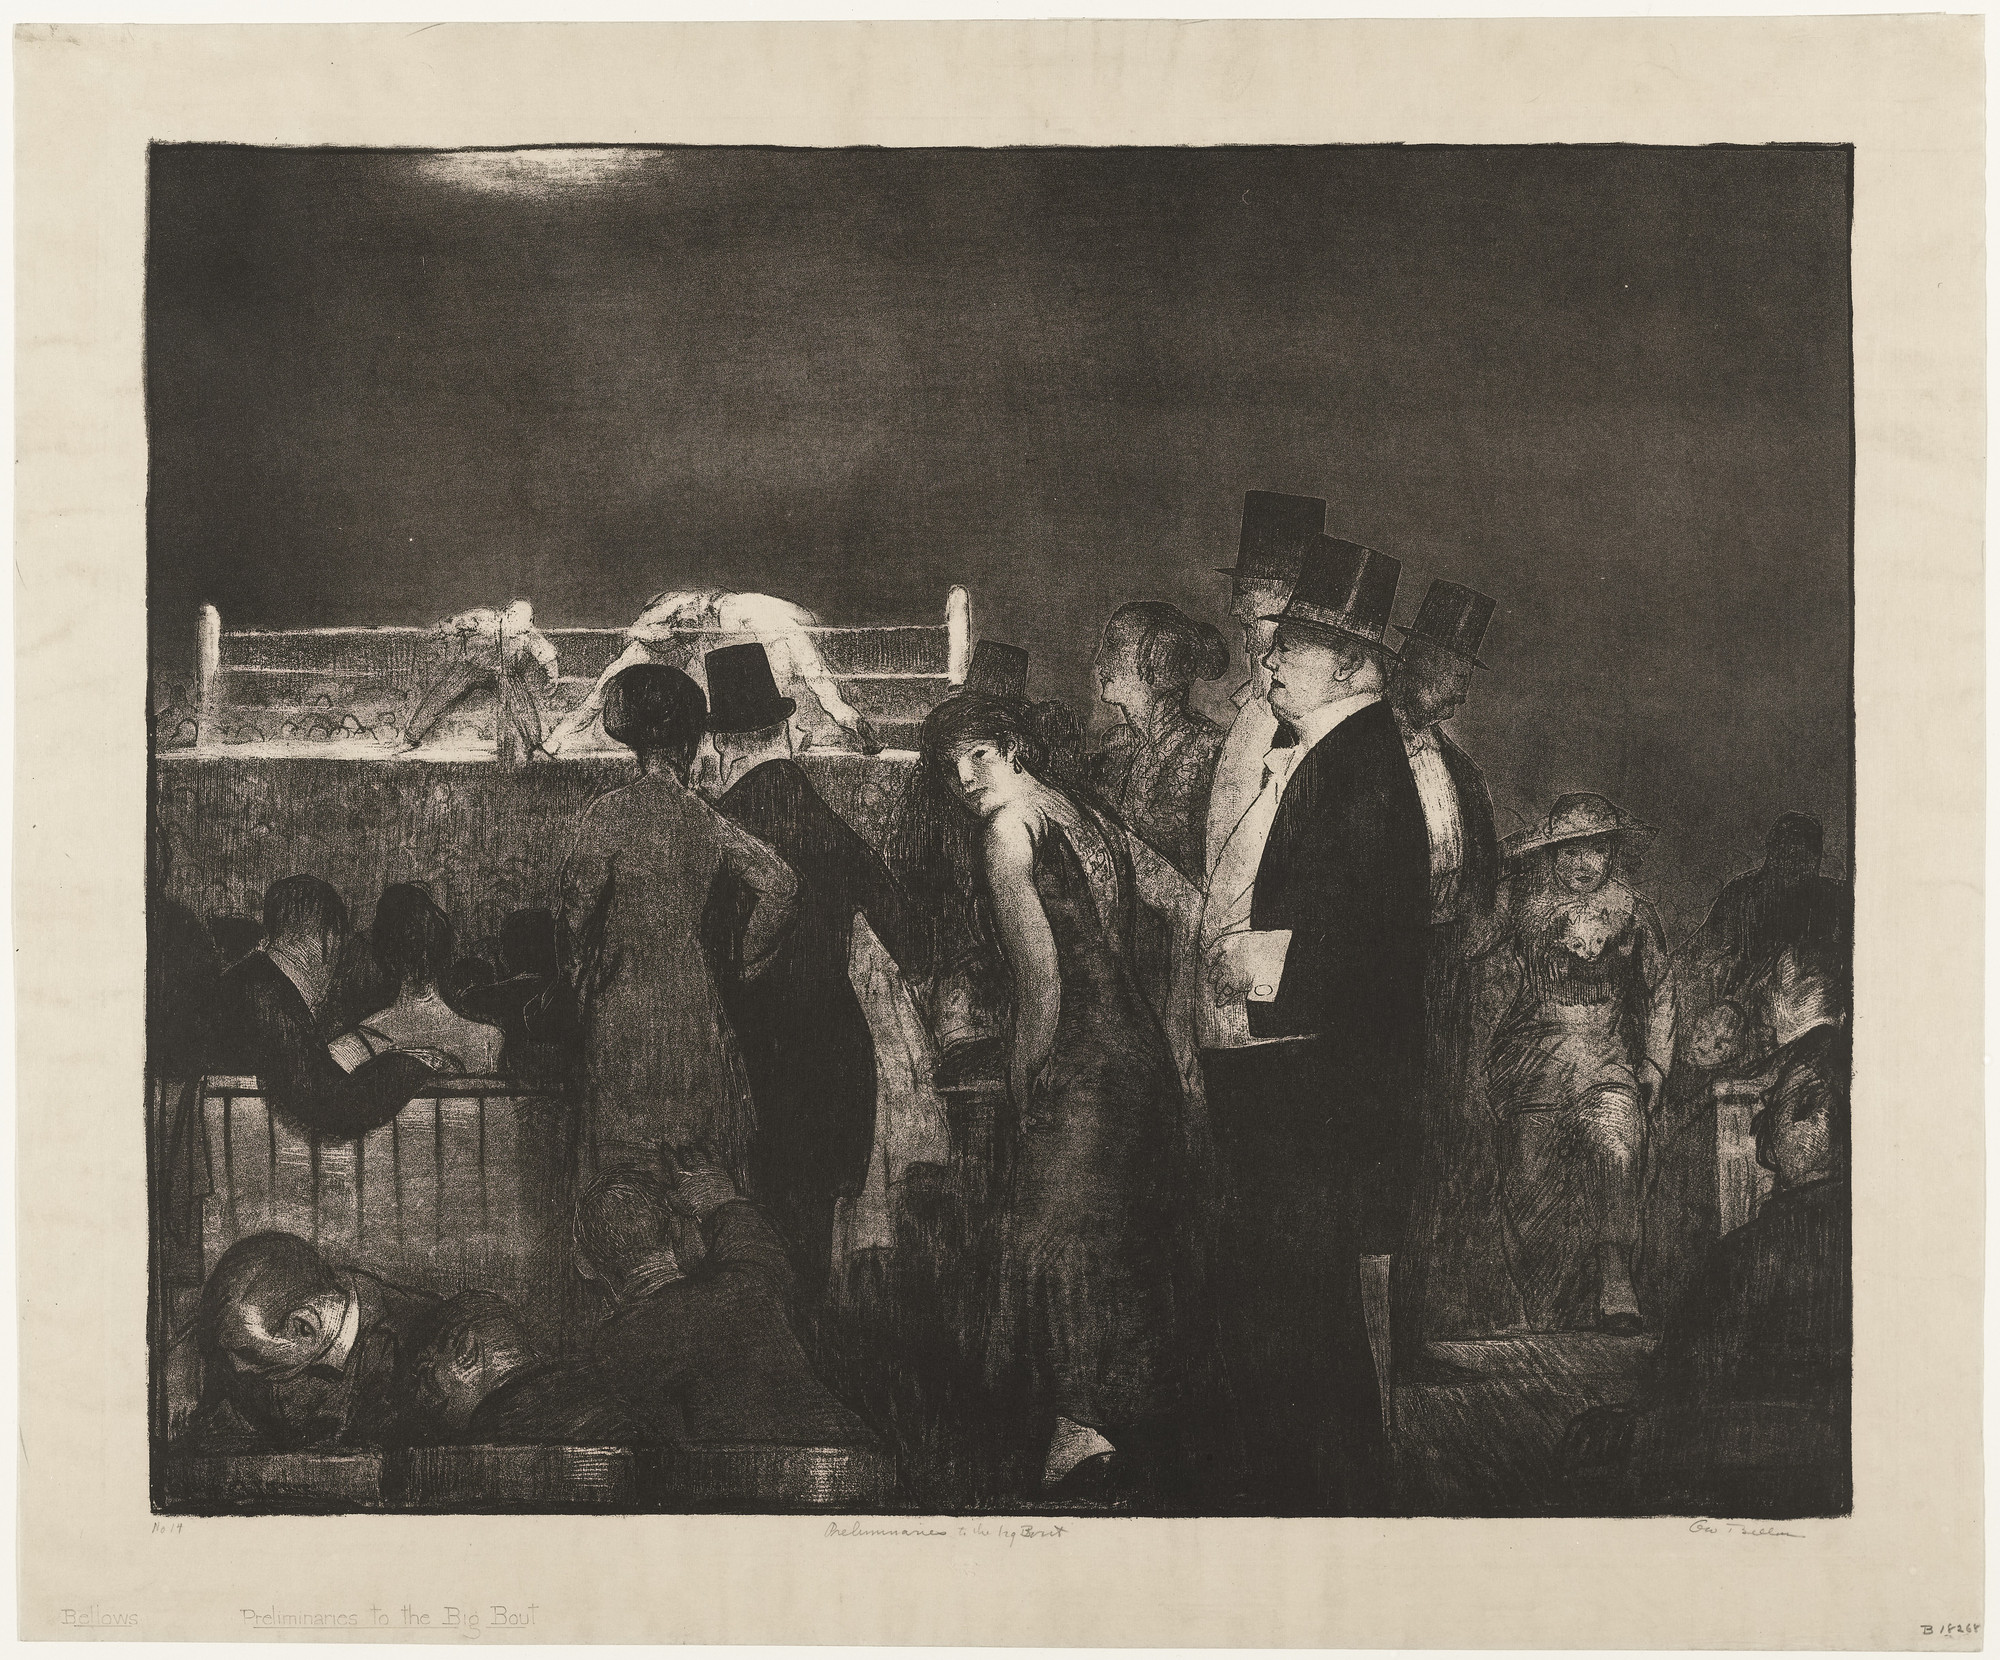 George Bellows. Preliminaries. 1916